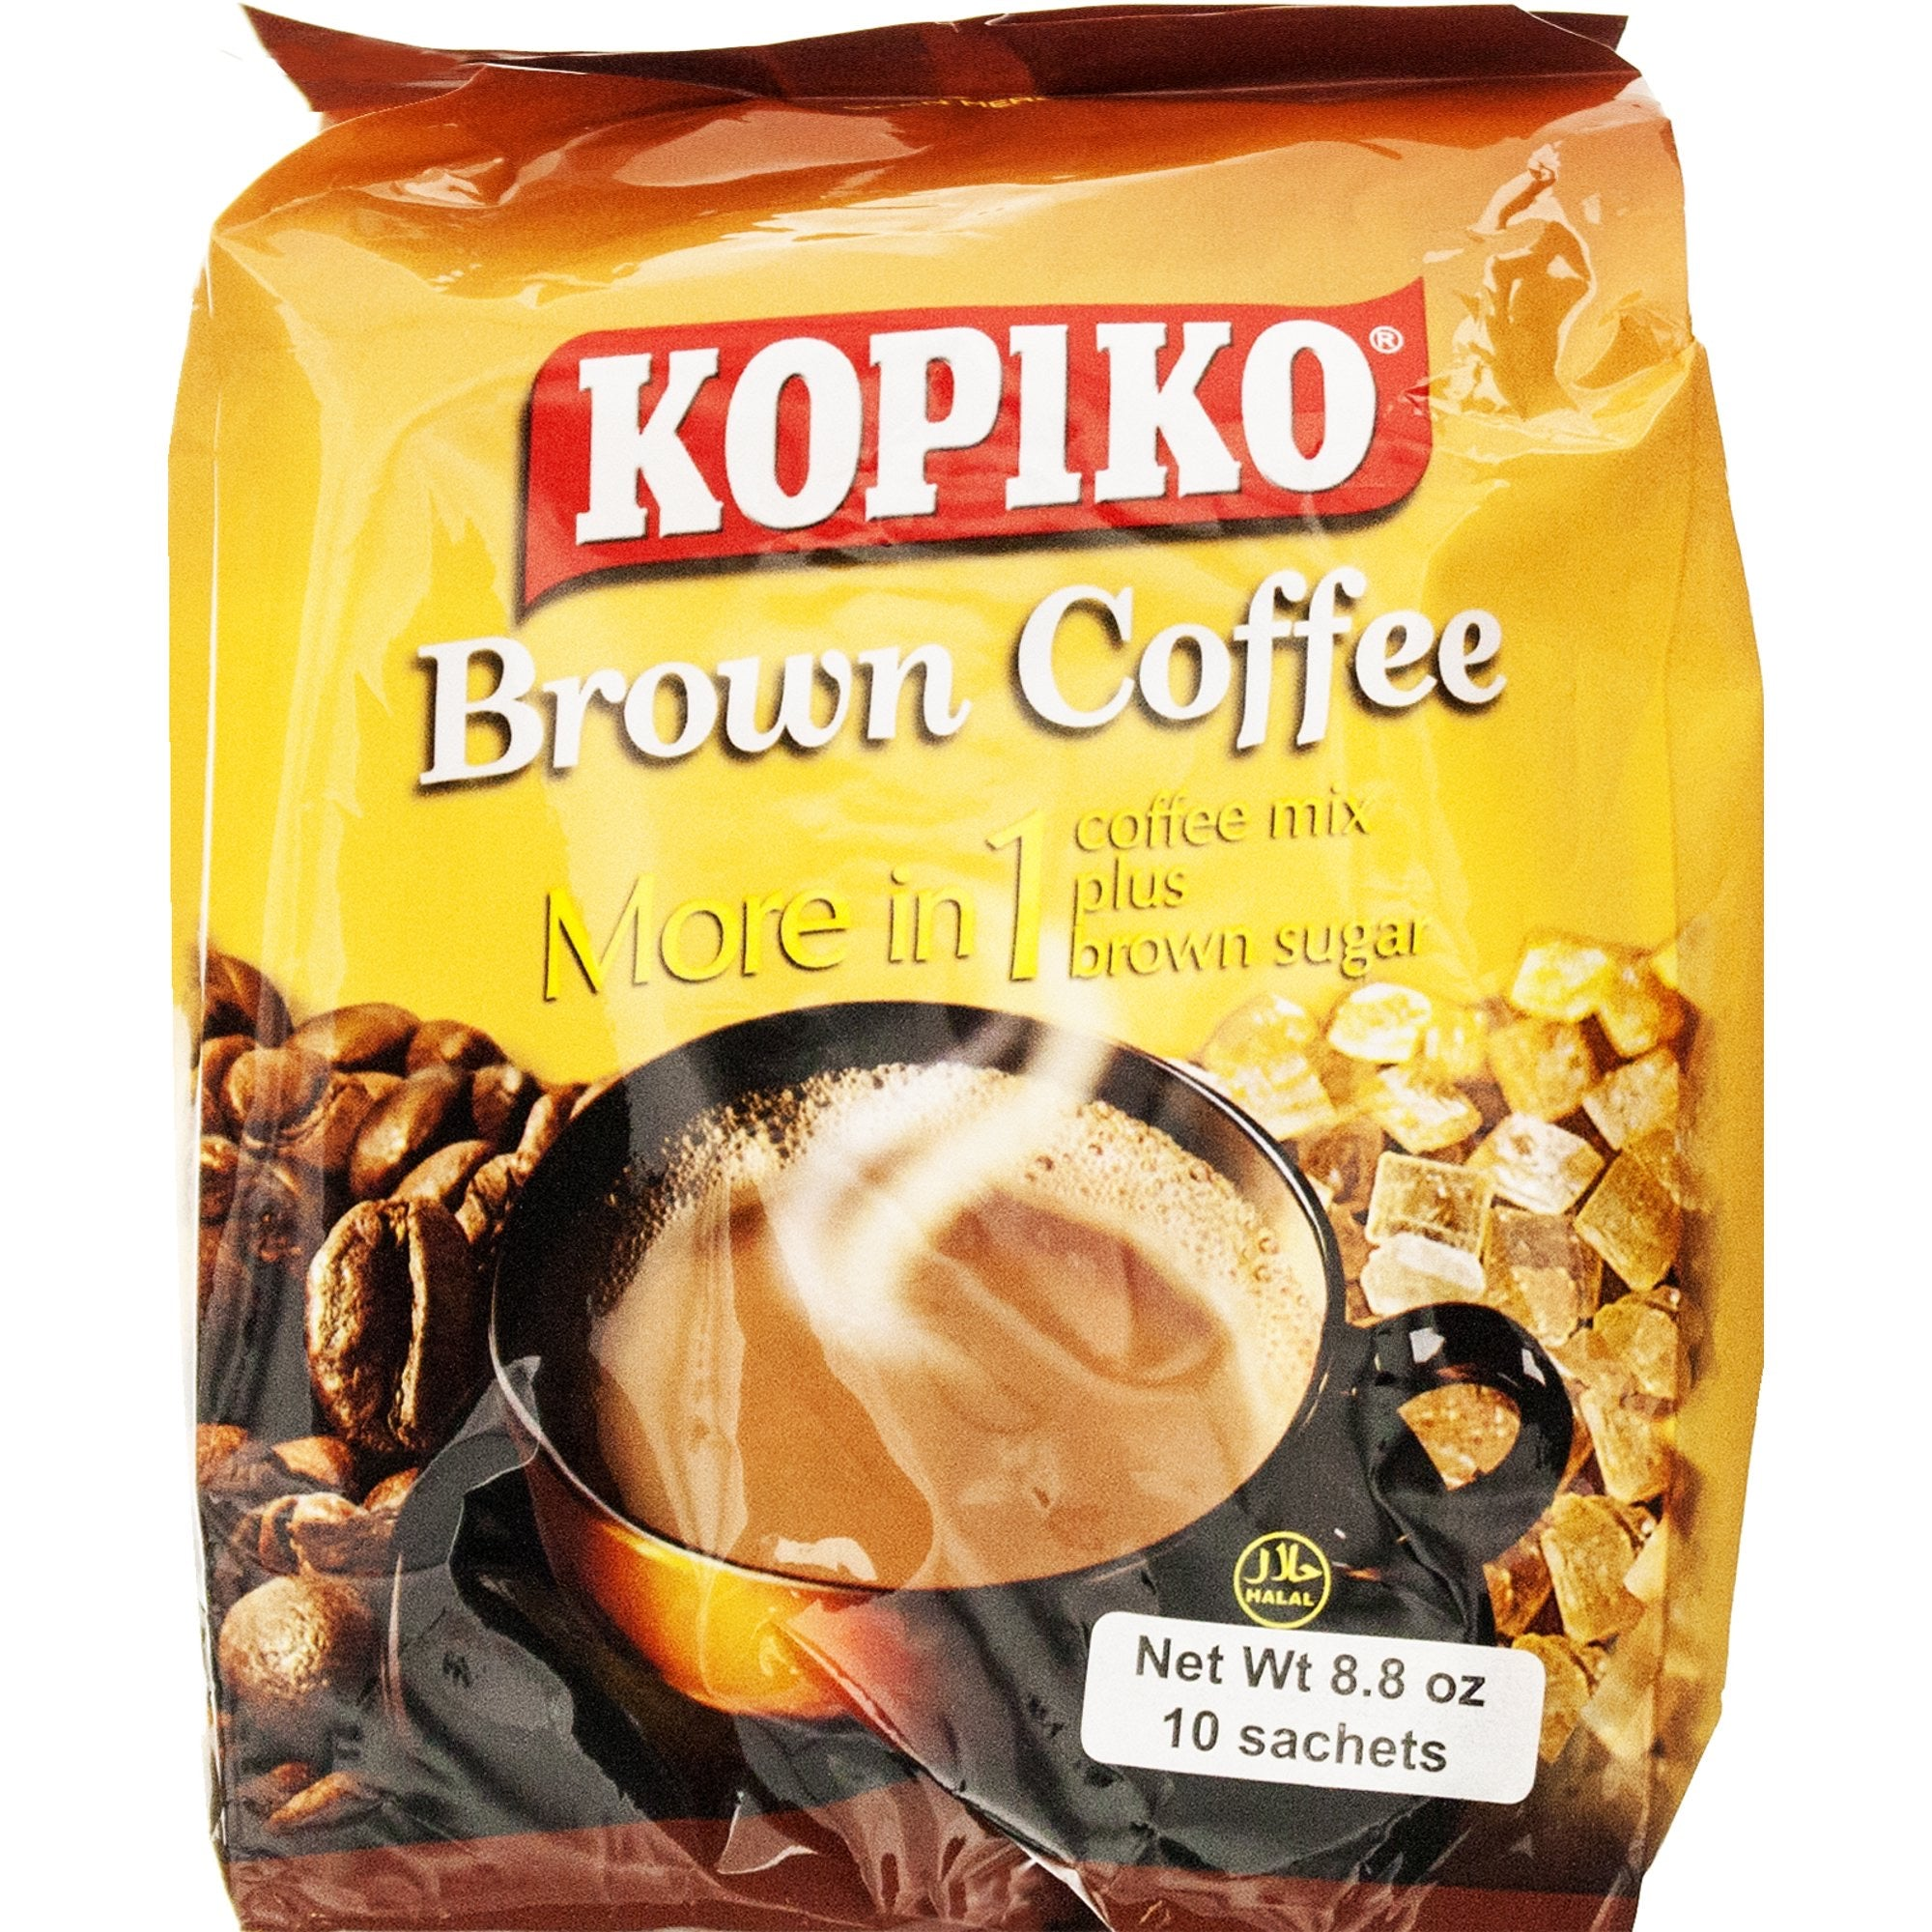 Kopiko - Brown Coffee 3-in-1 Coffee Mix 10 sachets